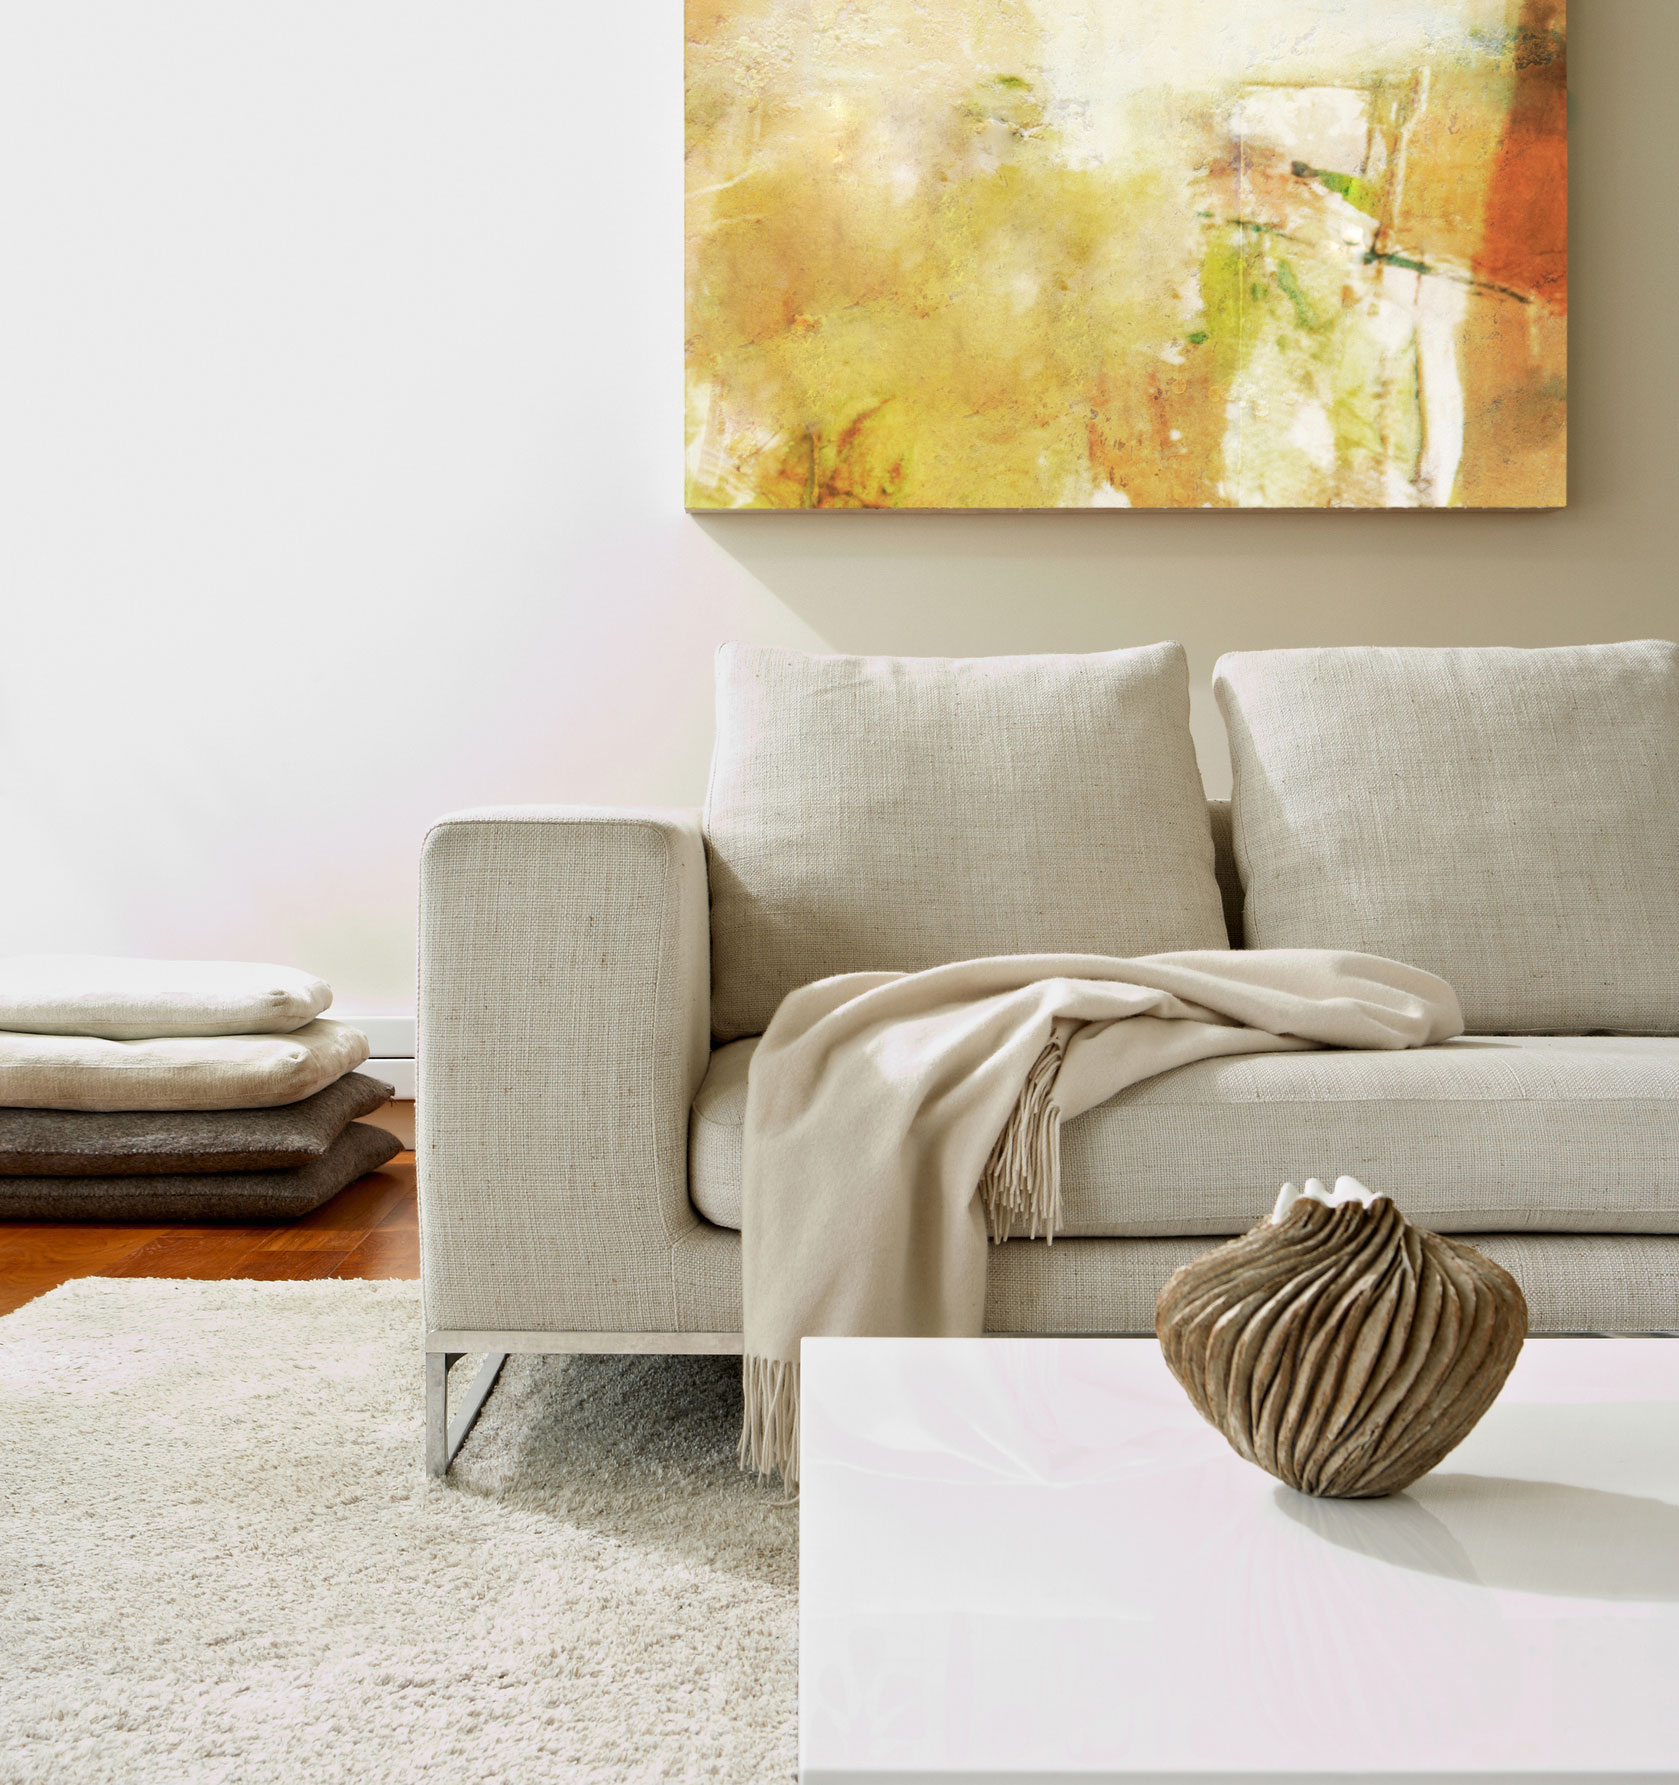 Living Room Painting Examples: Good Neutral Paint Colors For A Relaxing, Natural Home